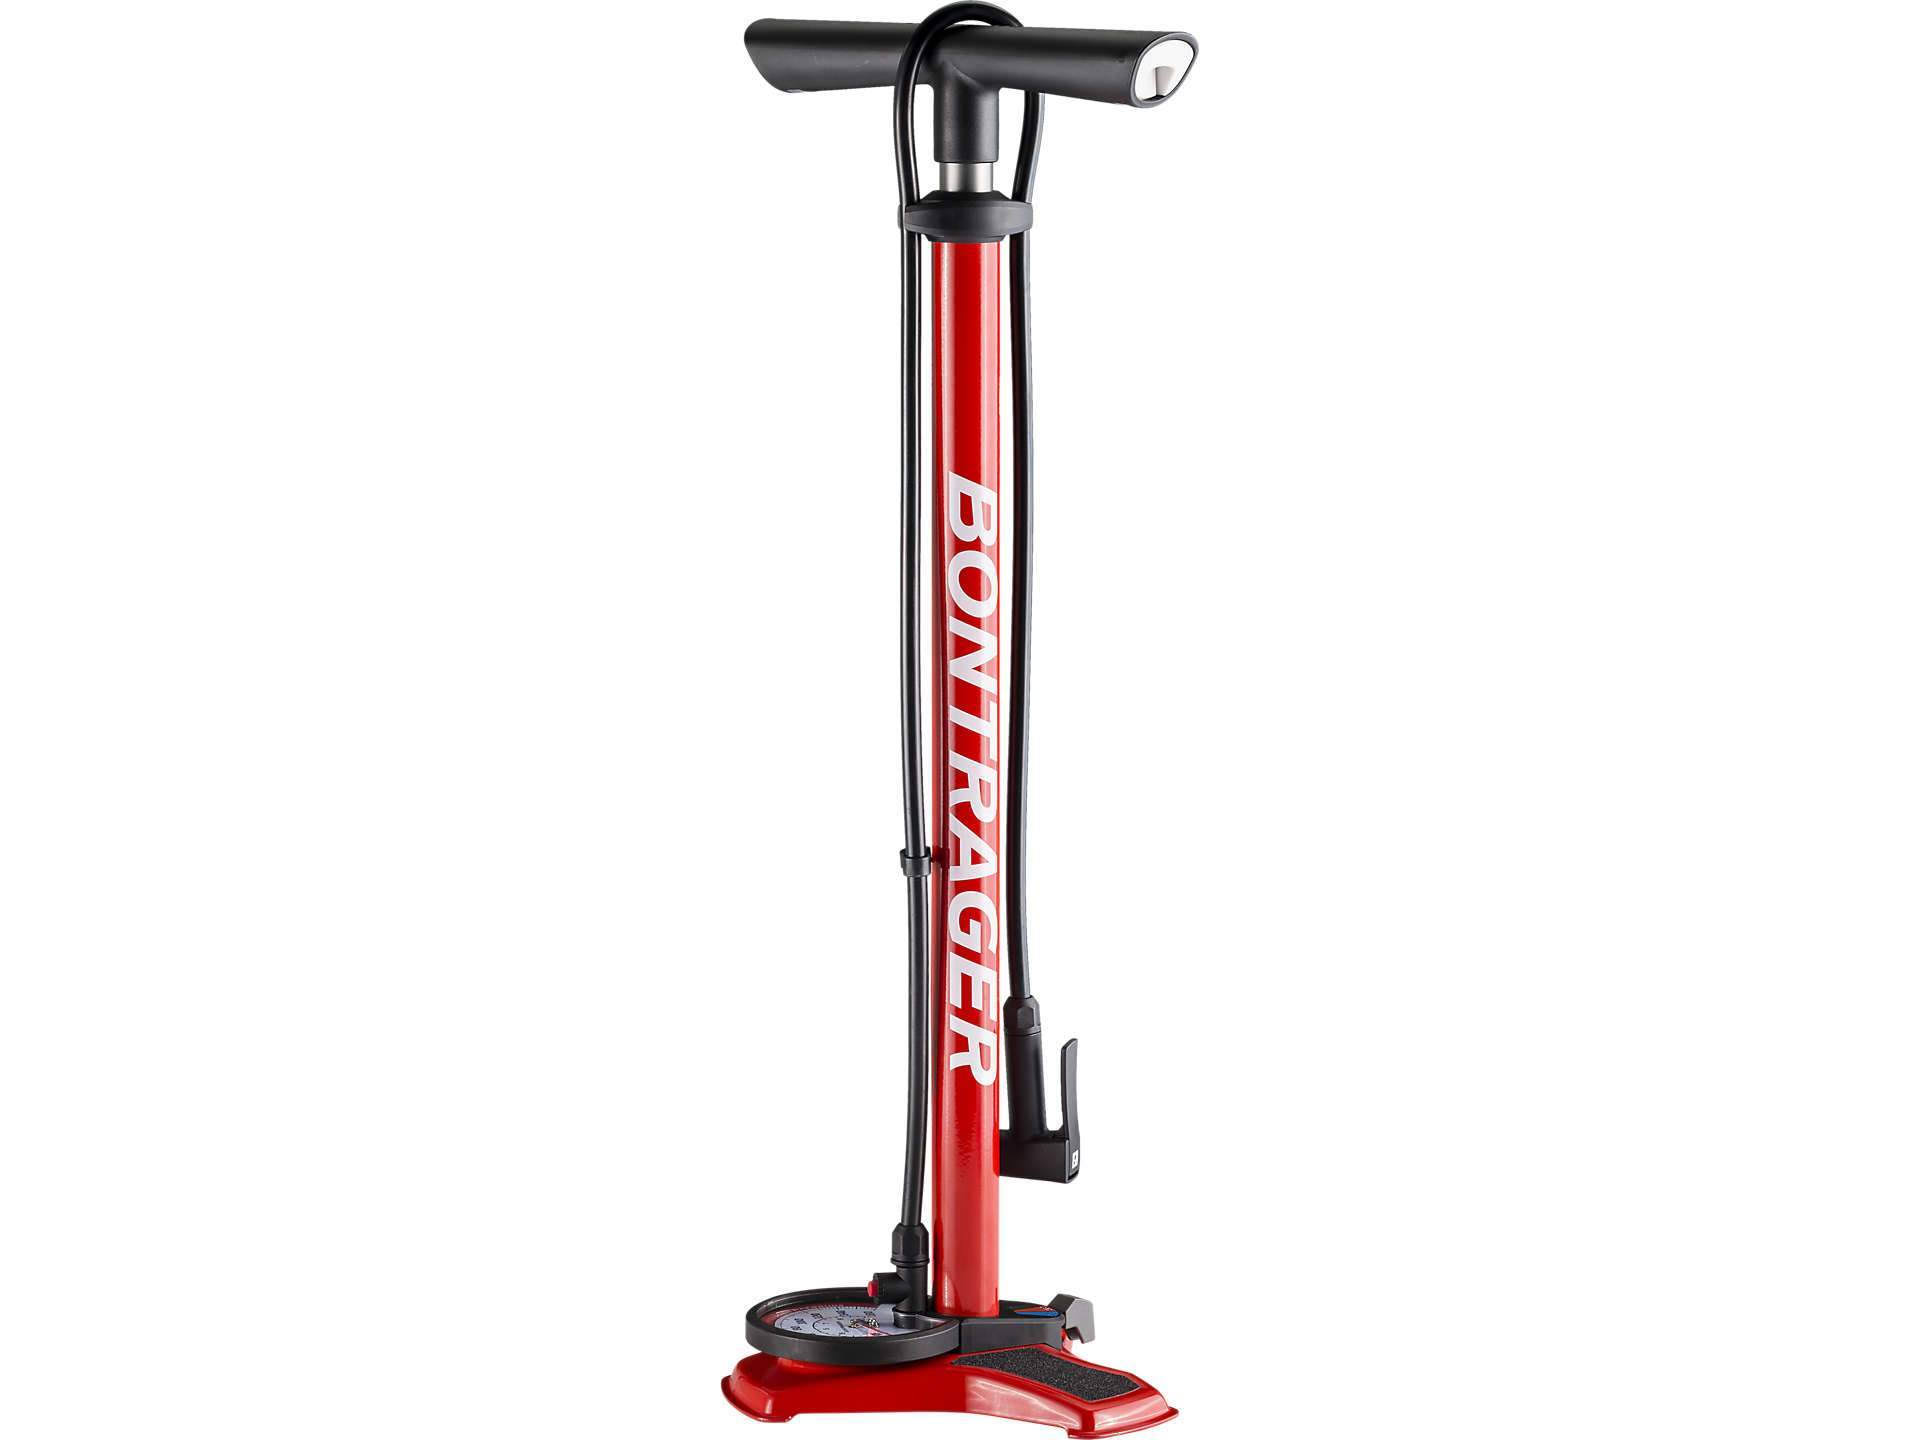 Bontrager Dual Charger Floor Pump - Red - 552590